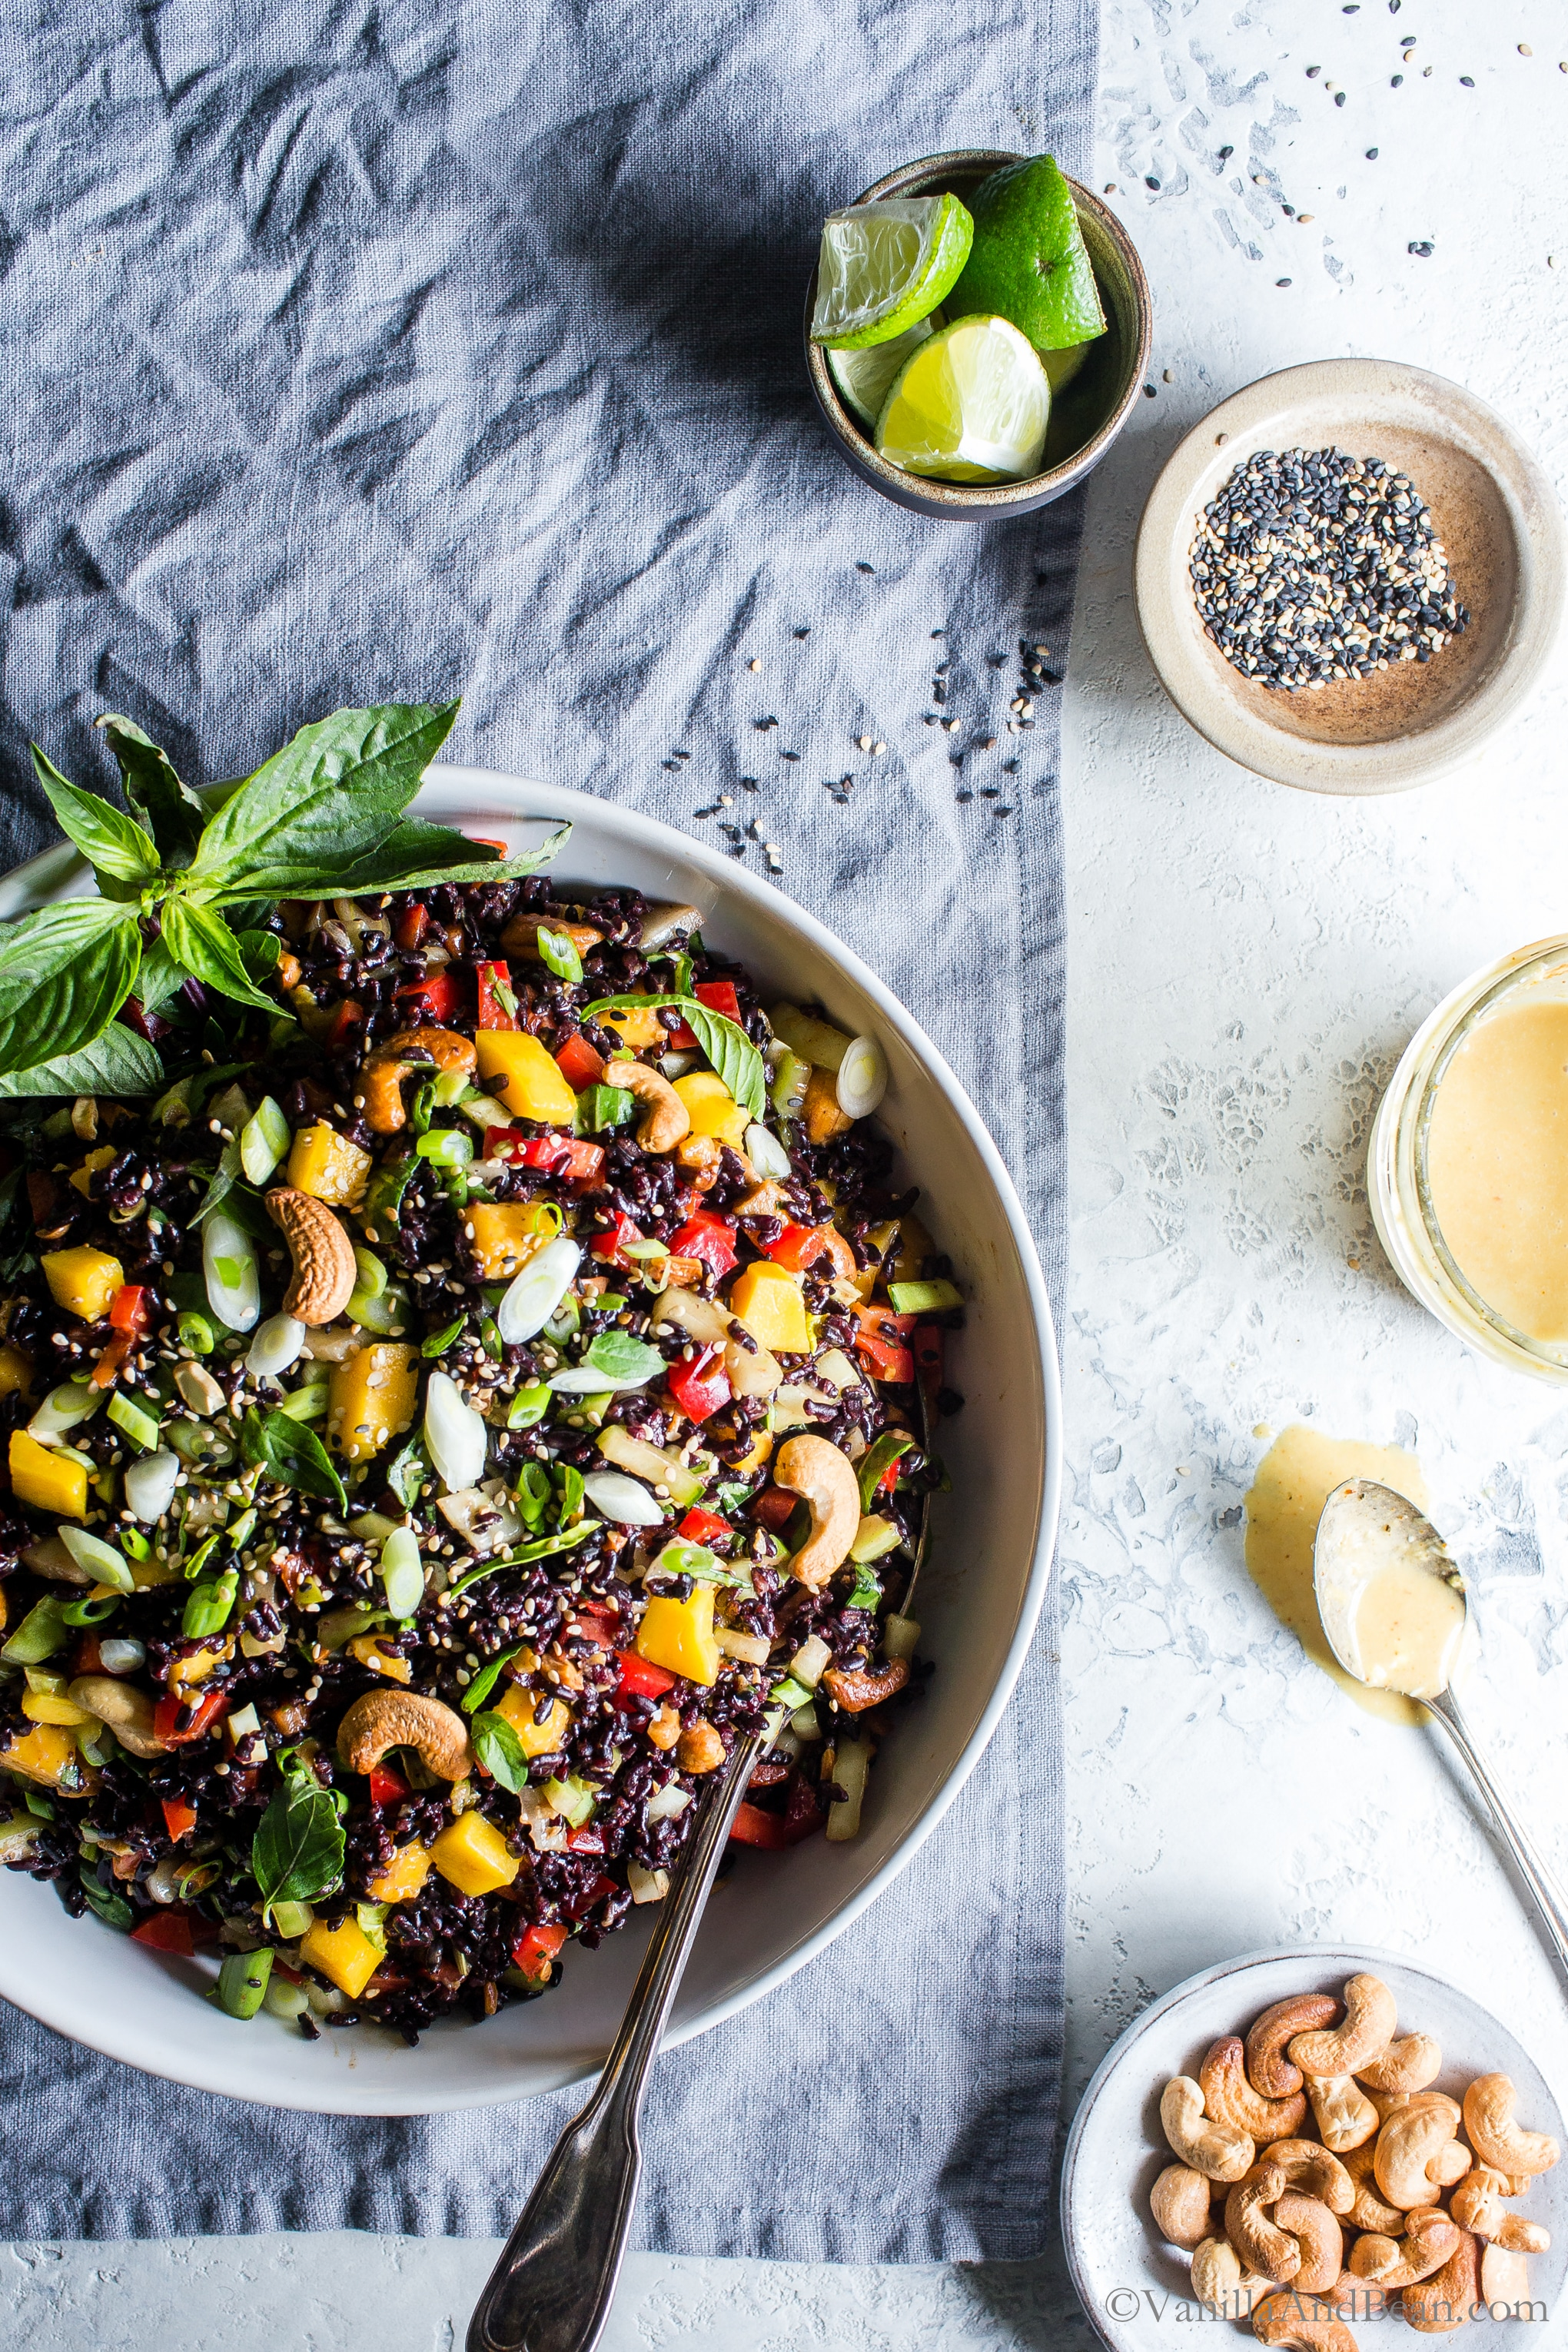 Packed with flavor and simple to make Forbidden Rice Salad with Mango, Bok Choy and Coconut Curried Dressing is meal prep easy, hearty and so satisfying! #VegetarianRecipes #Vegan #GlutenFree